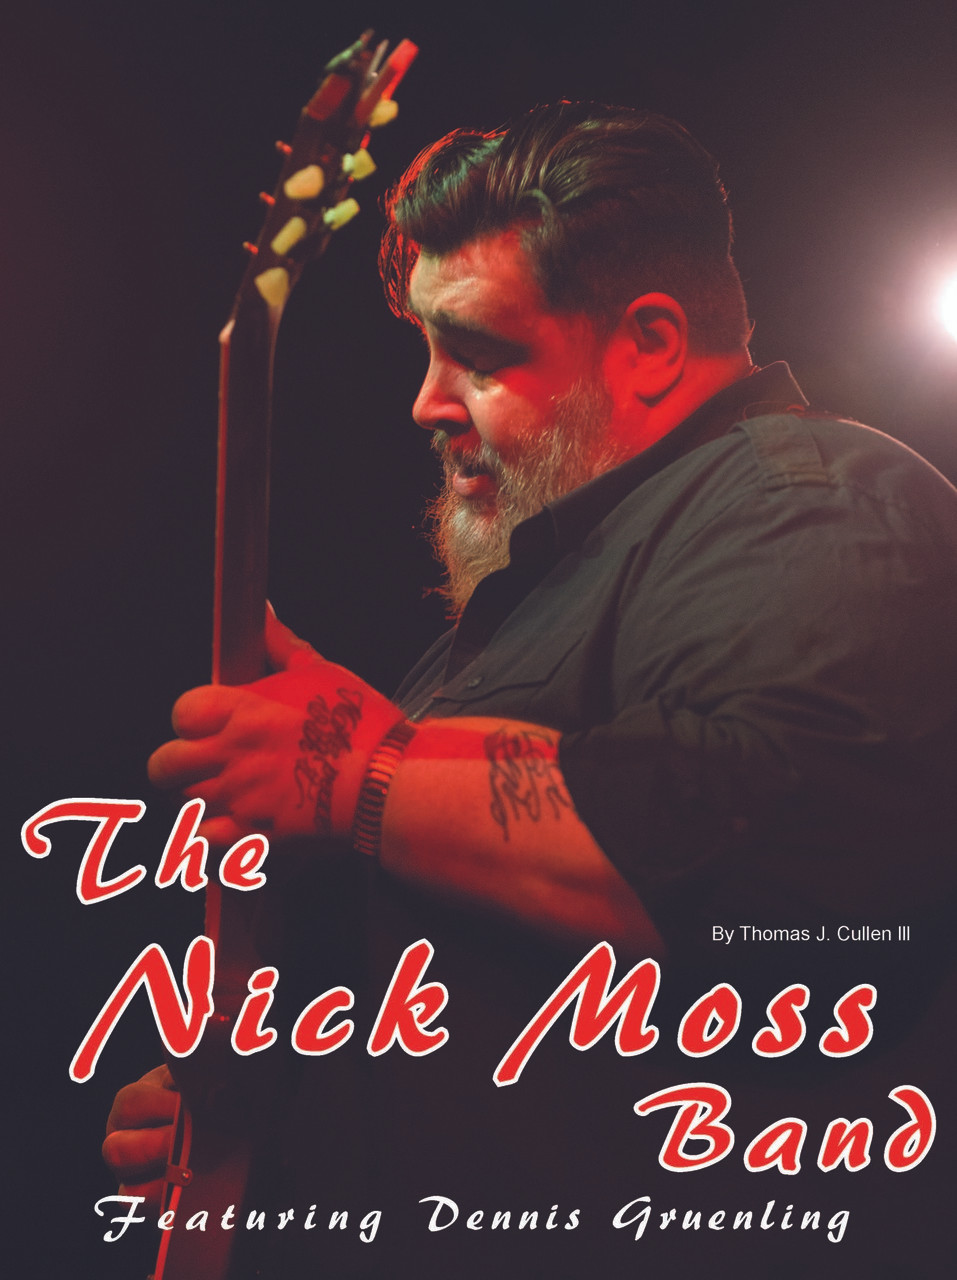 NICK MOSS Feature in Issue 20 January 2019